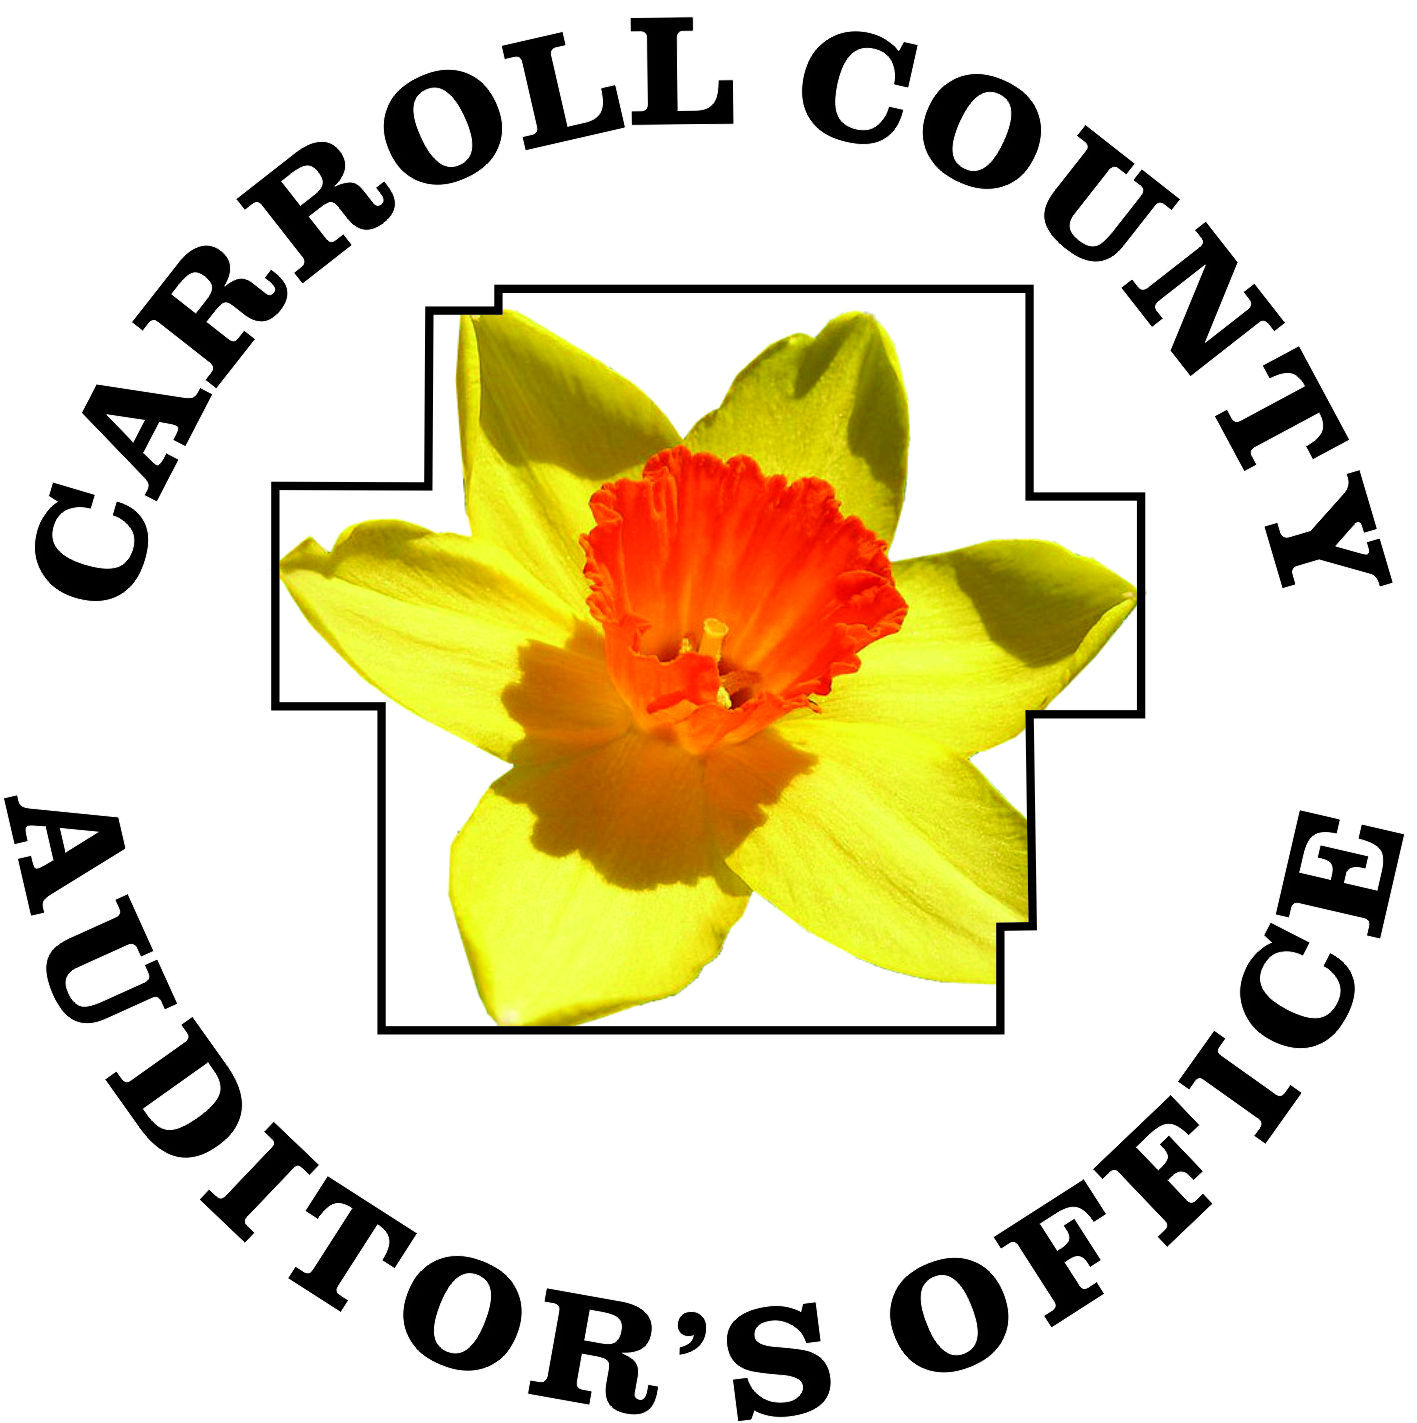 Carroll County Auditor's Office logo